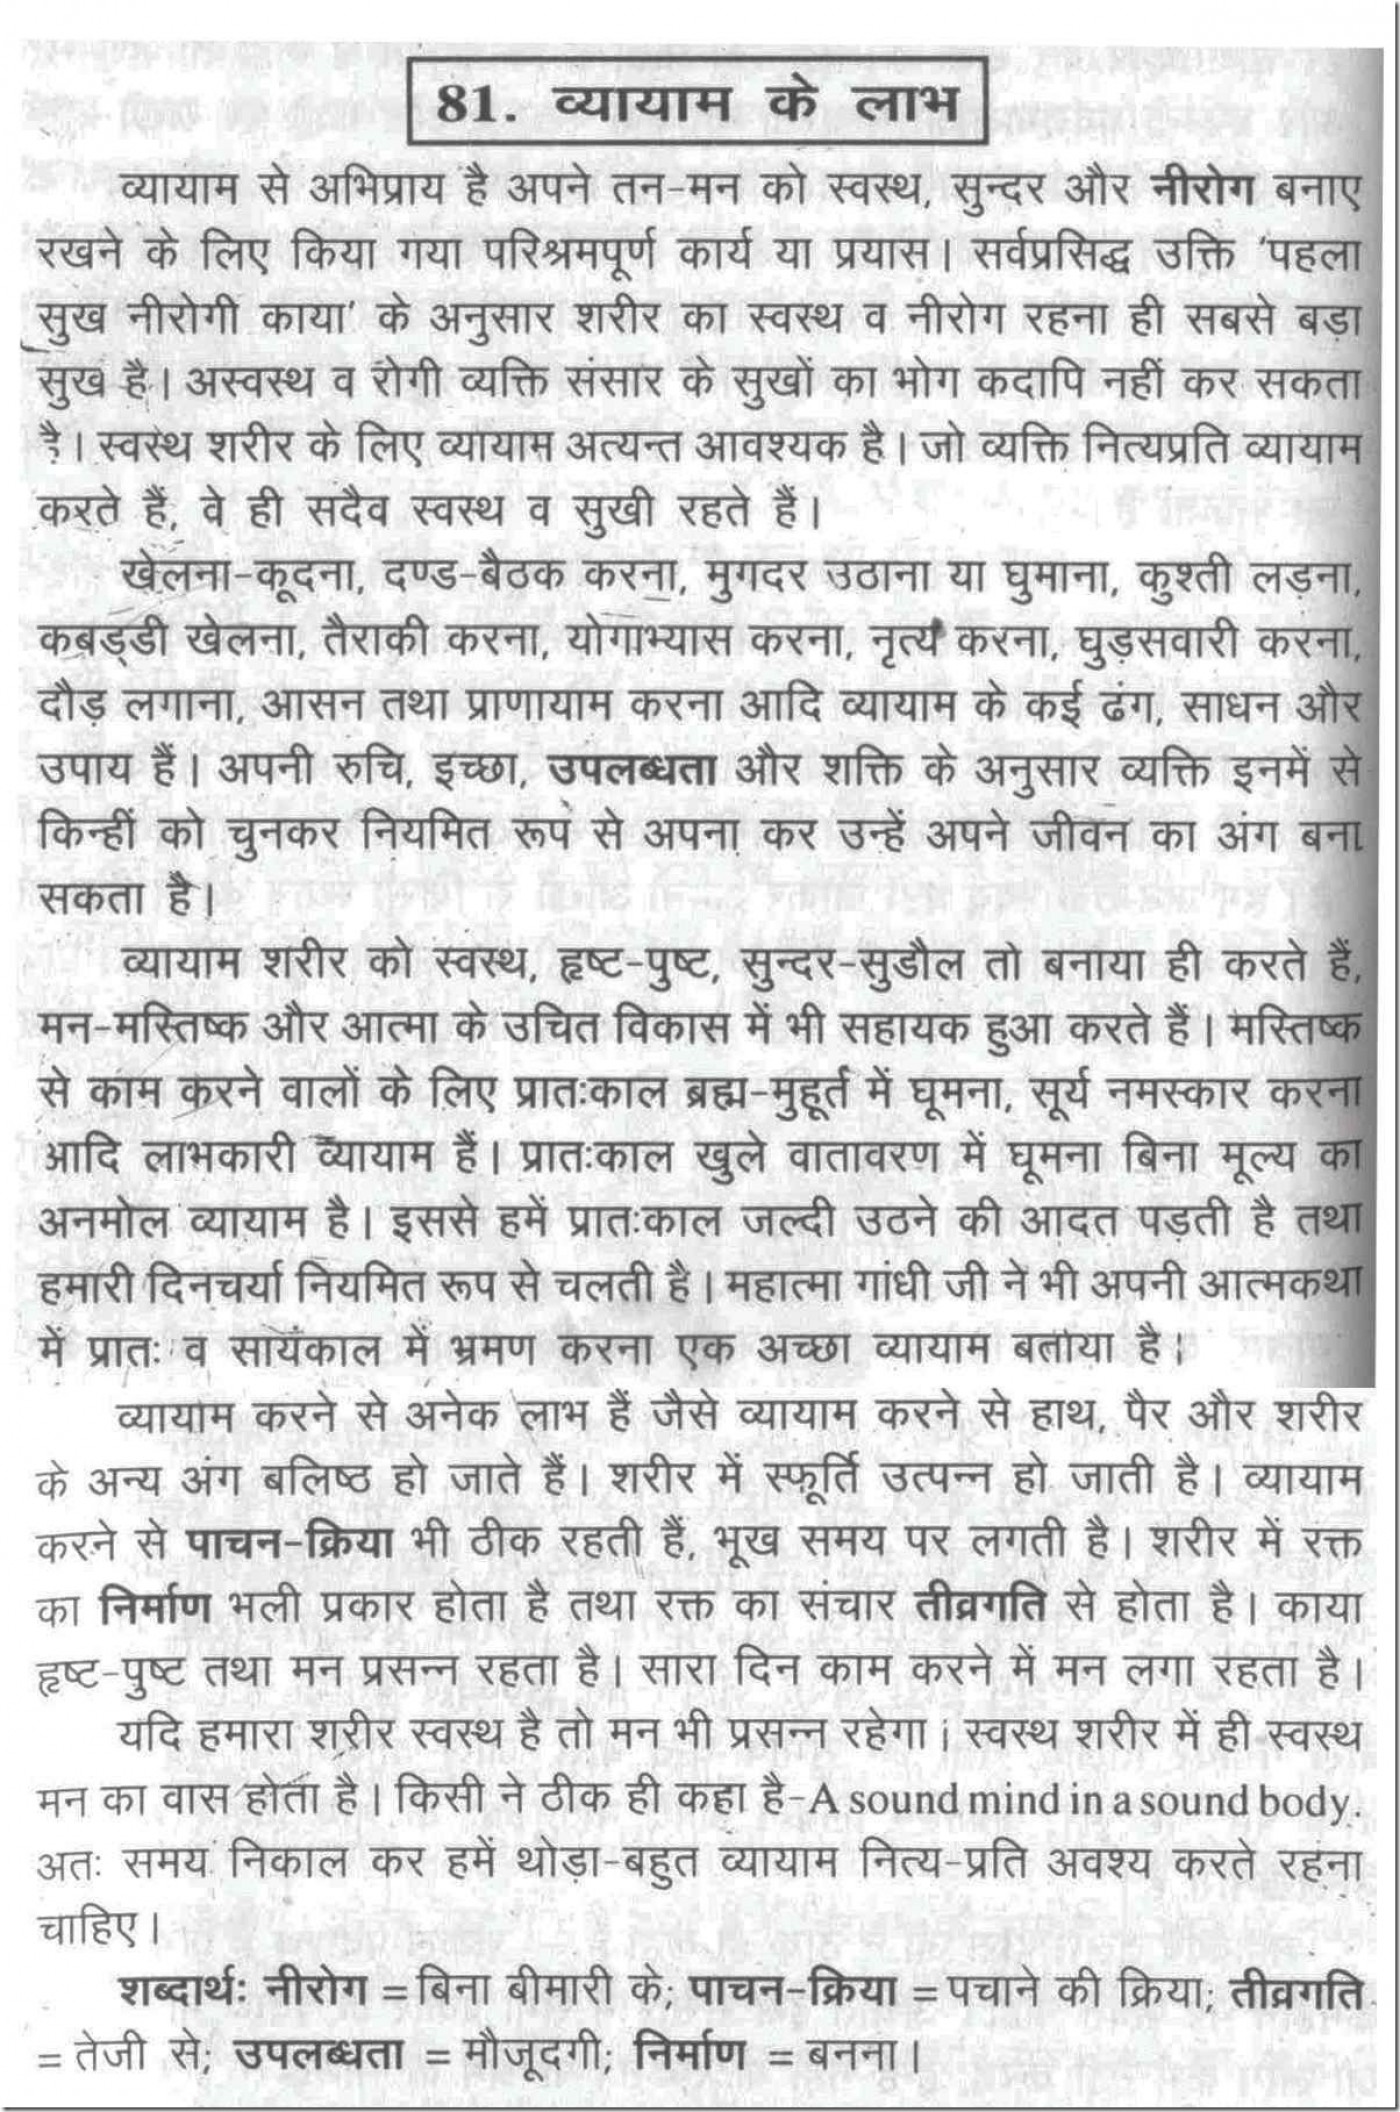 011 2563478896 Essay On Health And Fitness Through Food Good Habits In Hindi Exceptional Wikipedia 1400